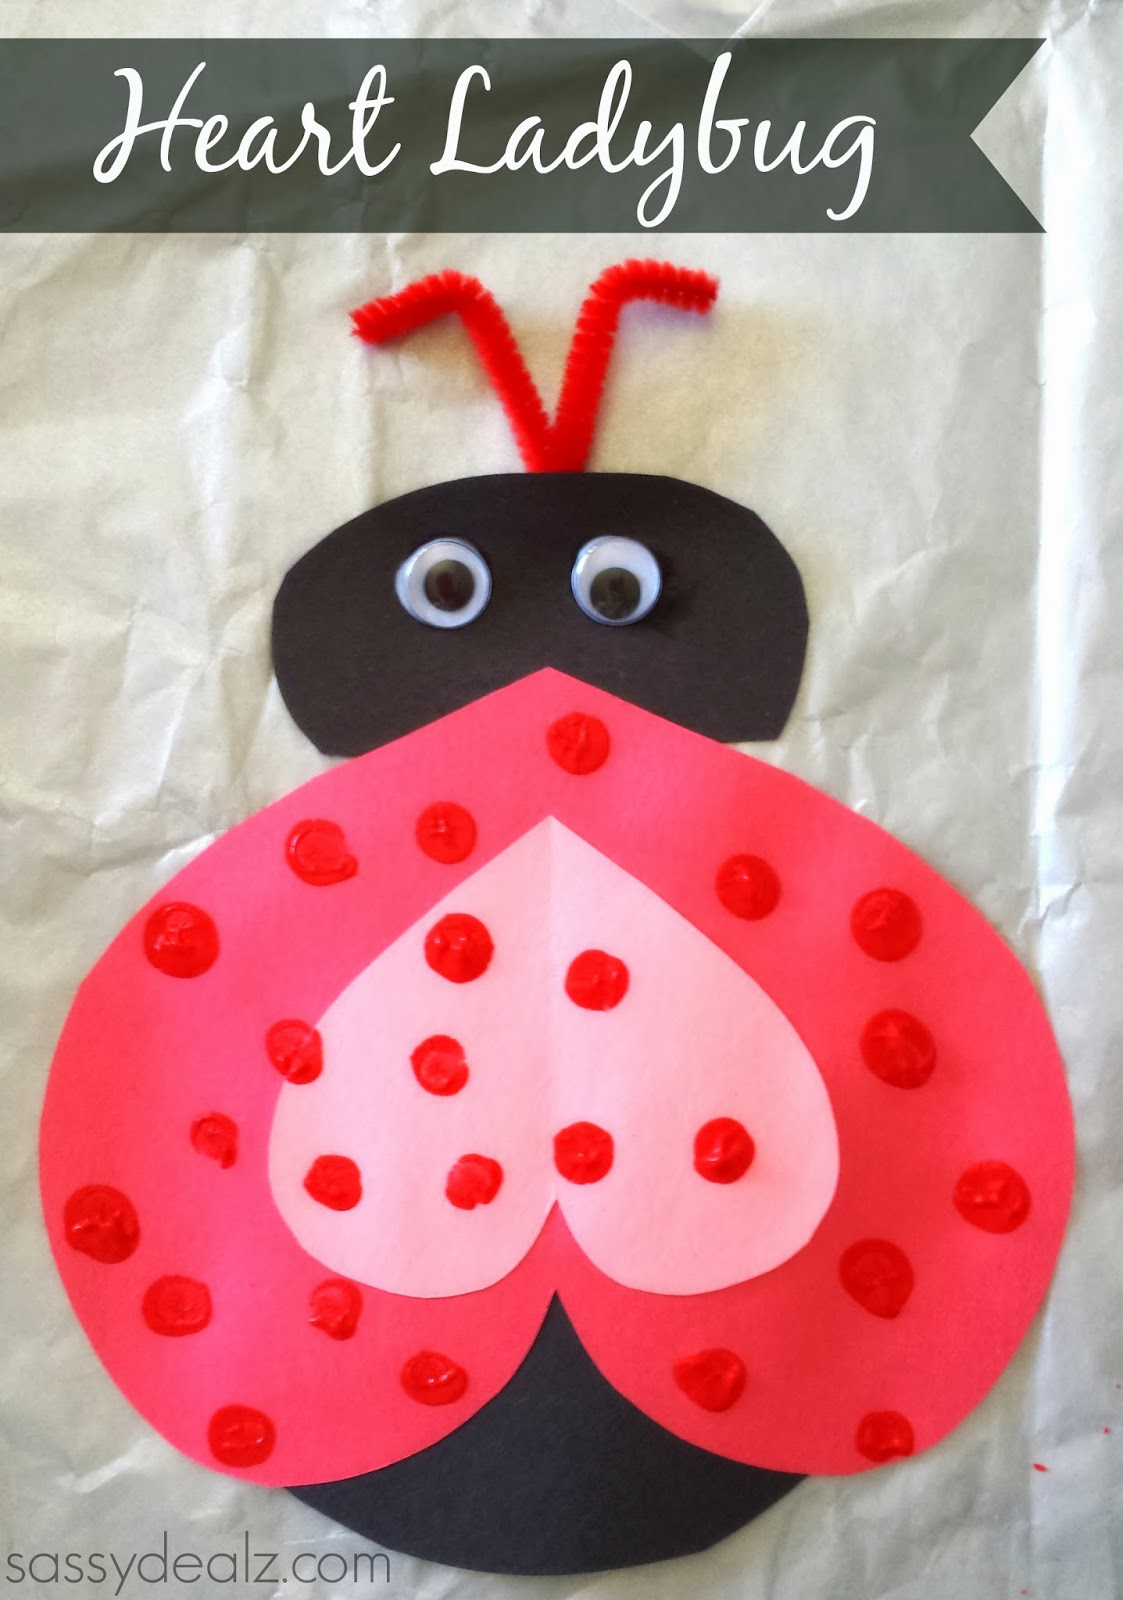 Heart ladybug valentines day craft for kids crafty morning for Valentine crafts for kindergarteners